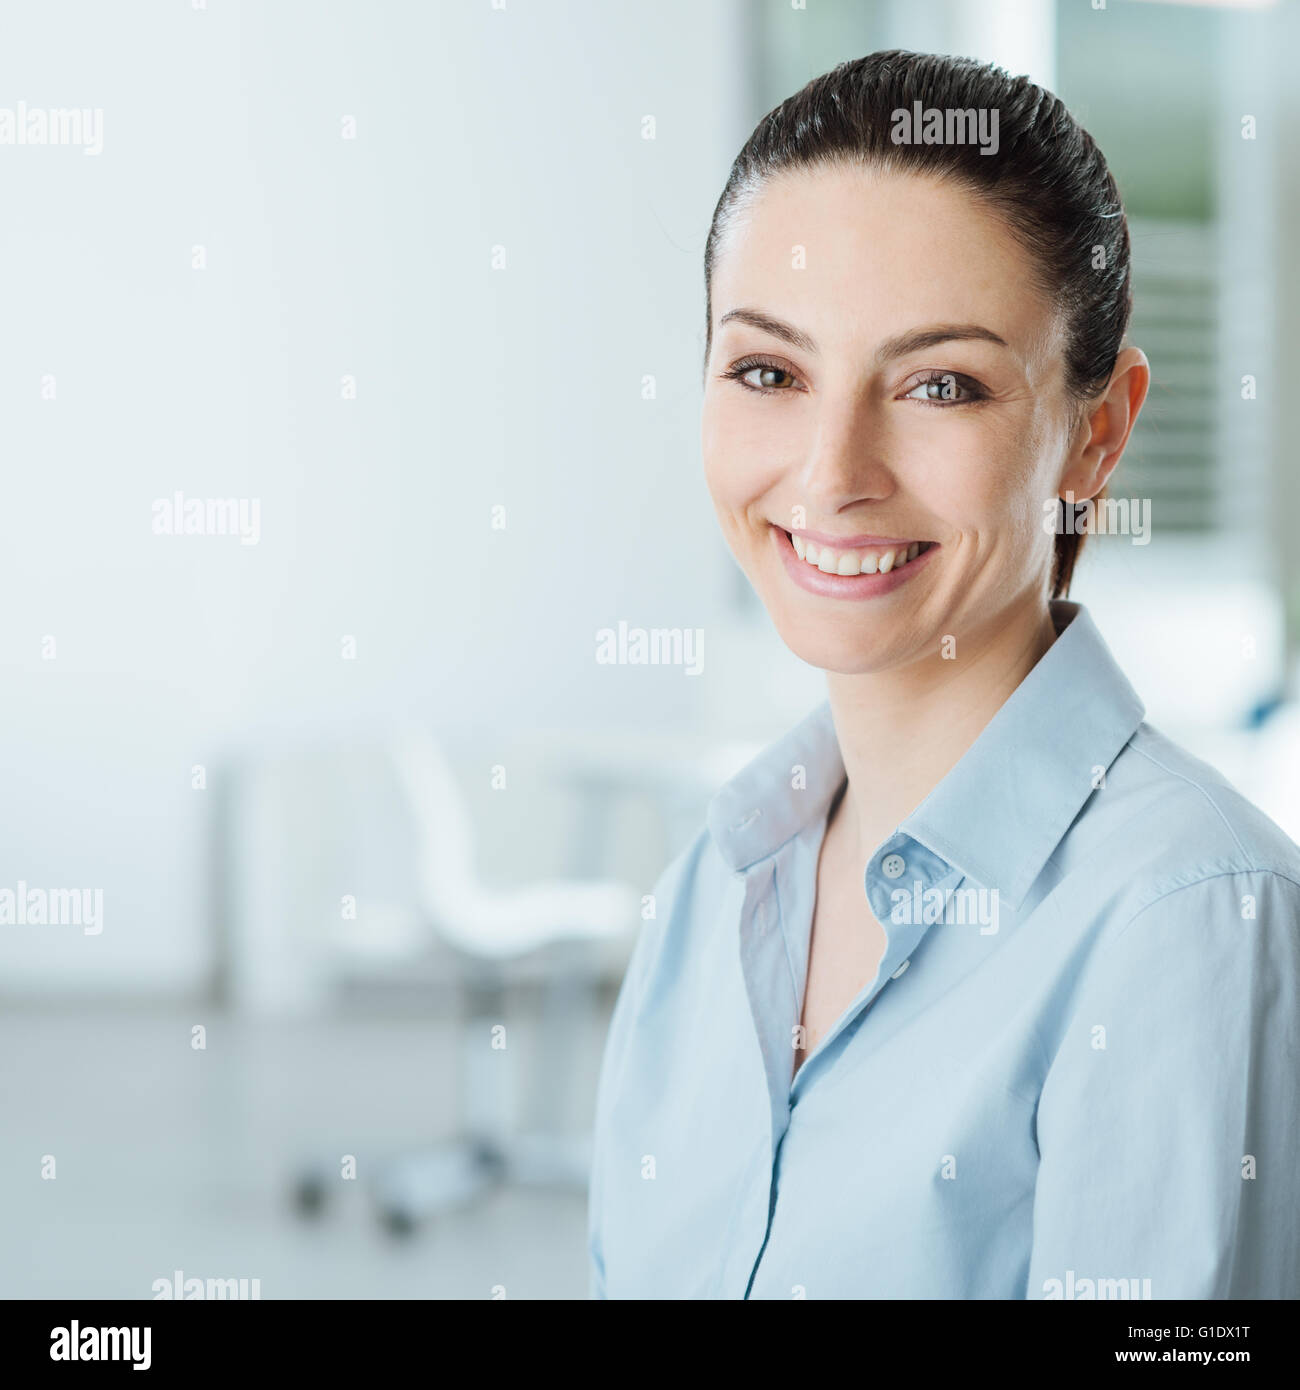 Beautiful young smiling business woman smiling and looking at camera, office interior on background - Stock Image